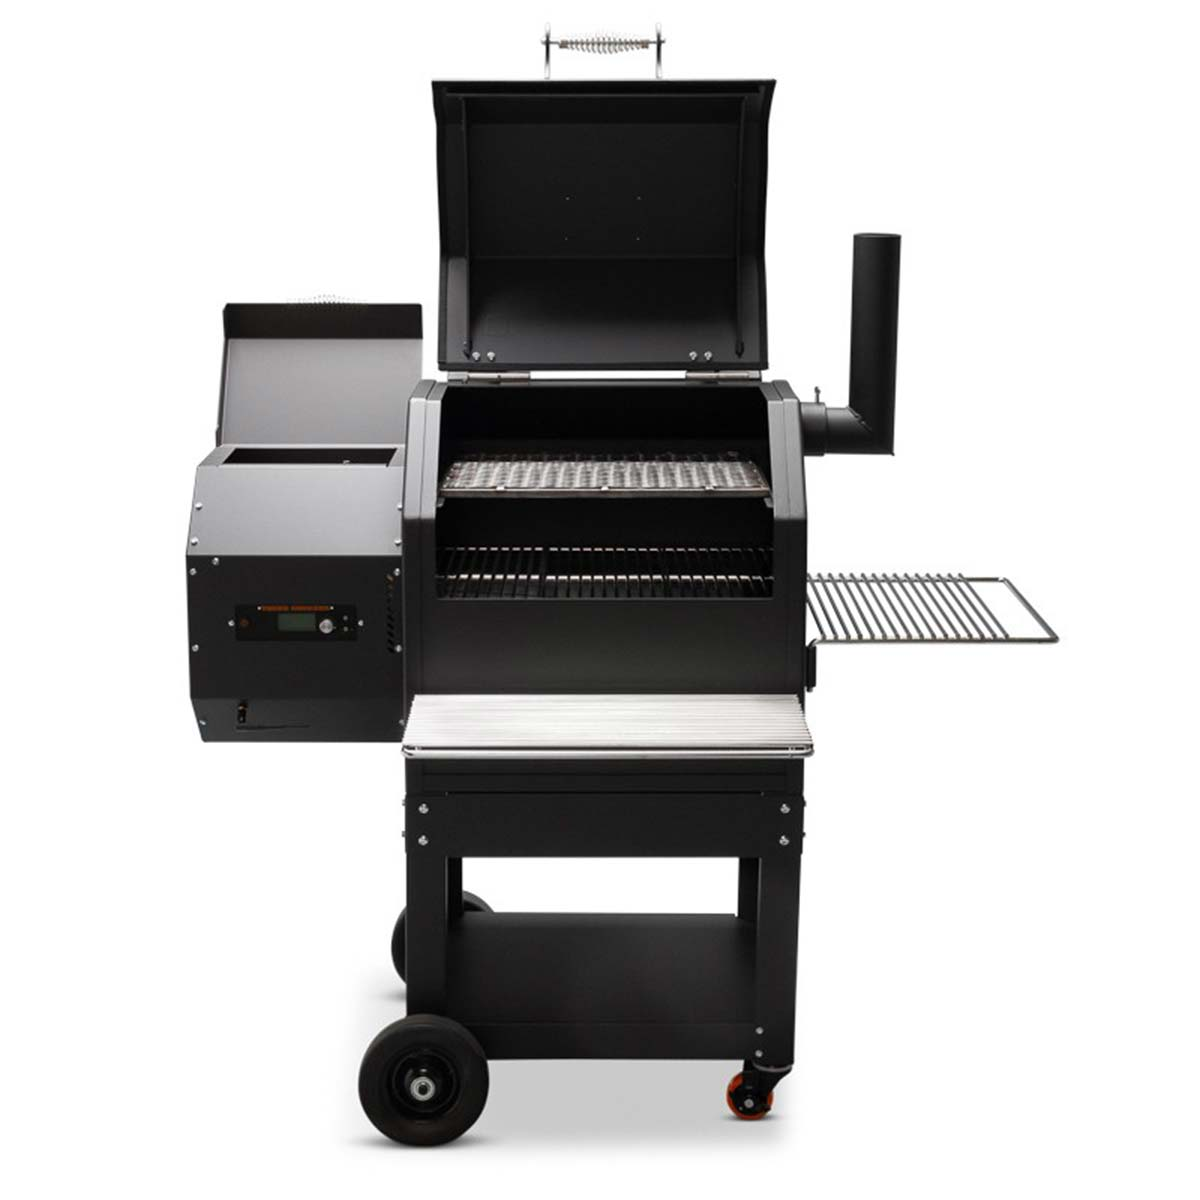 yoder-smokers-ys480s-pellet-grill-acs-wifi-8